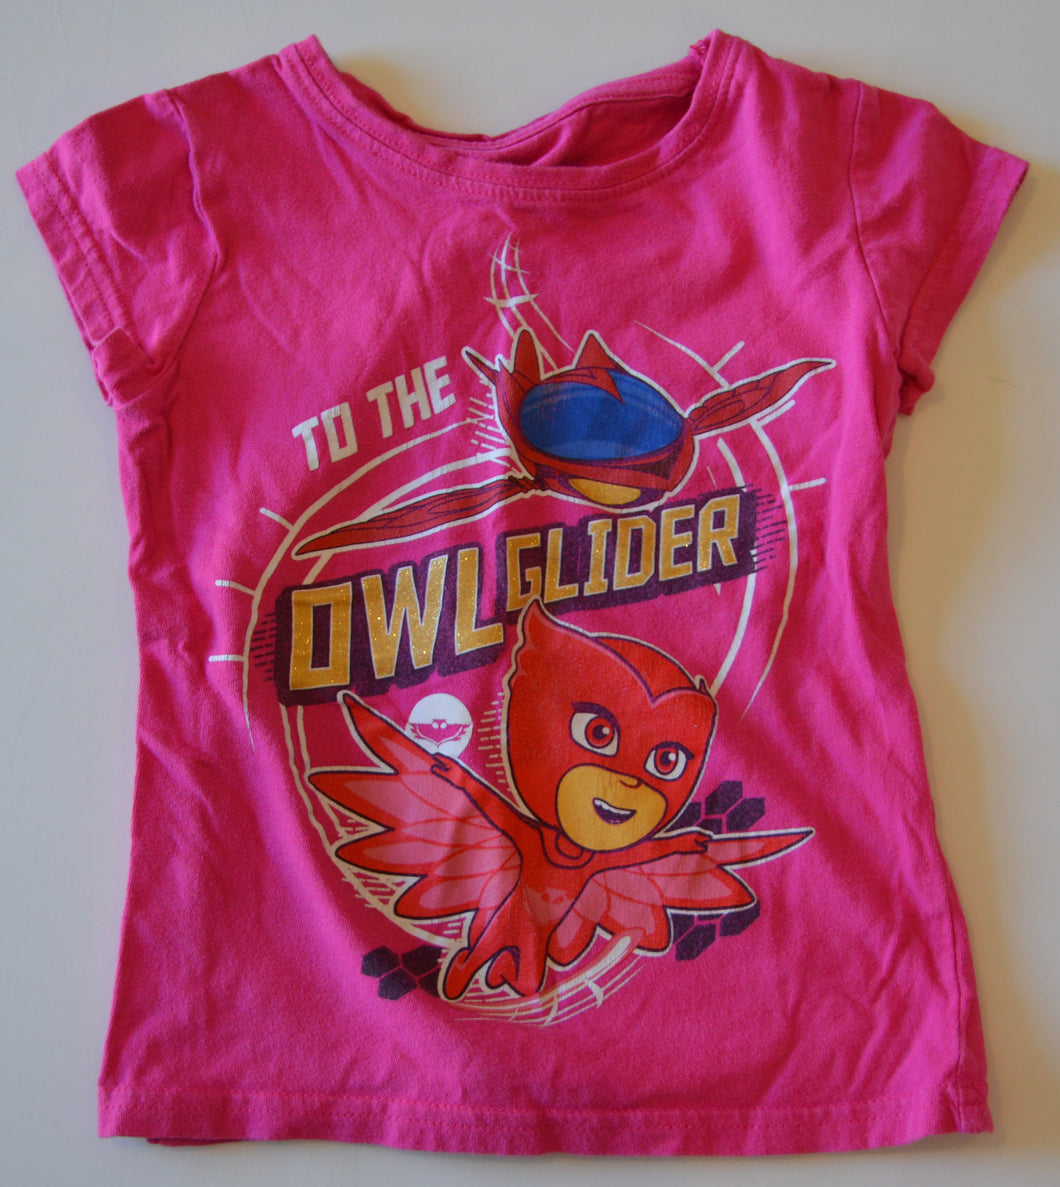 PJ Masks Pink To the Owl Glider T-Shirt